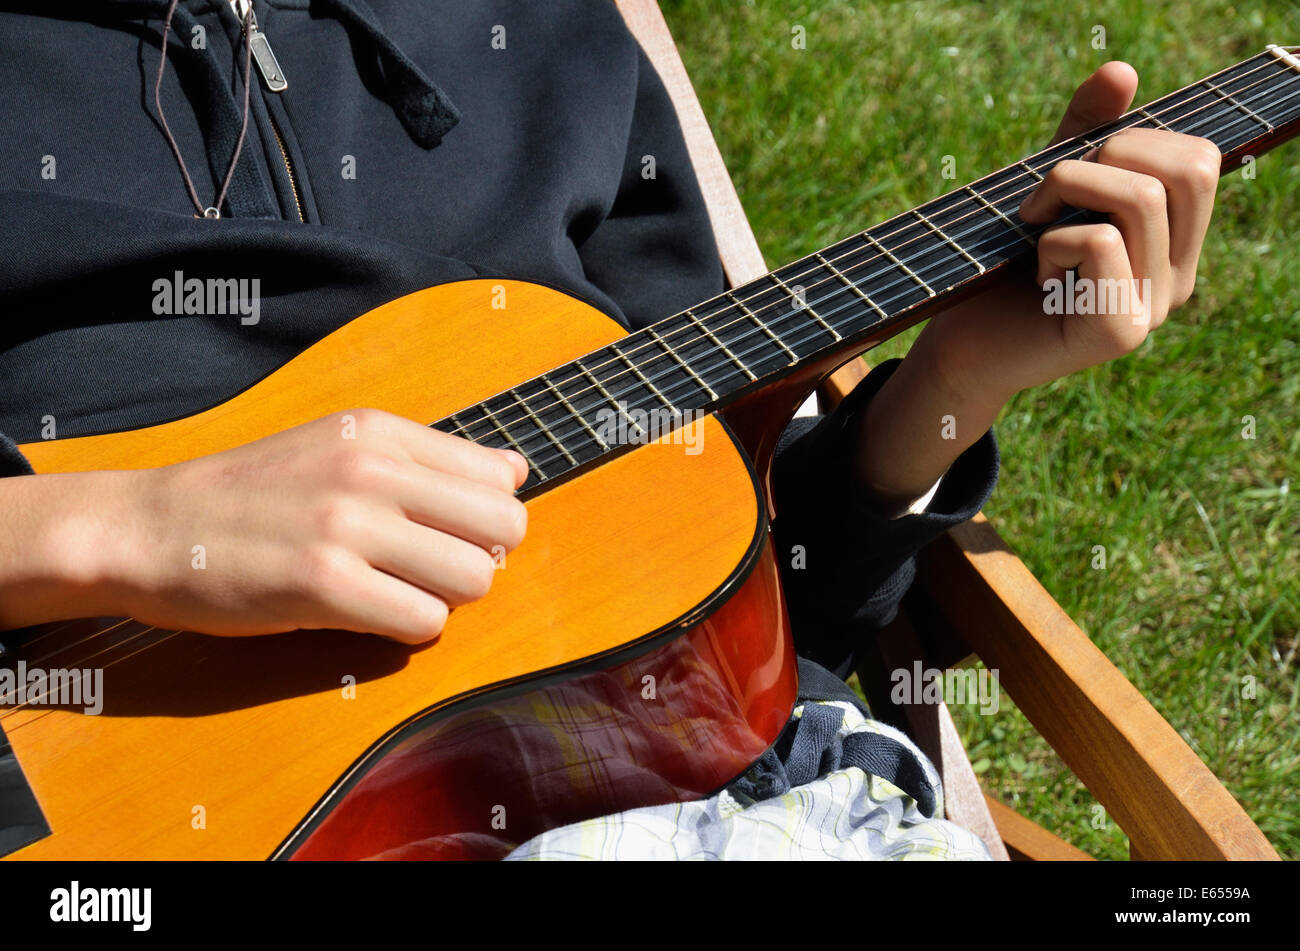 Teenage boy playing acoustic guitar outdoors - Stock Image